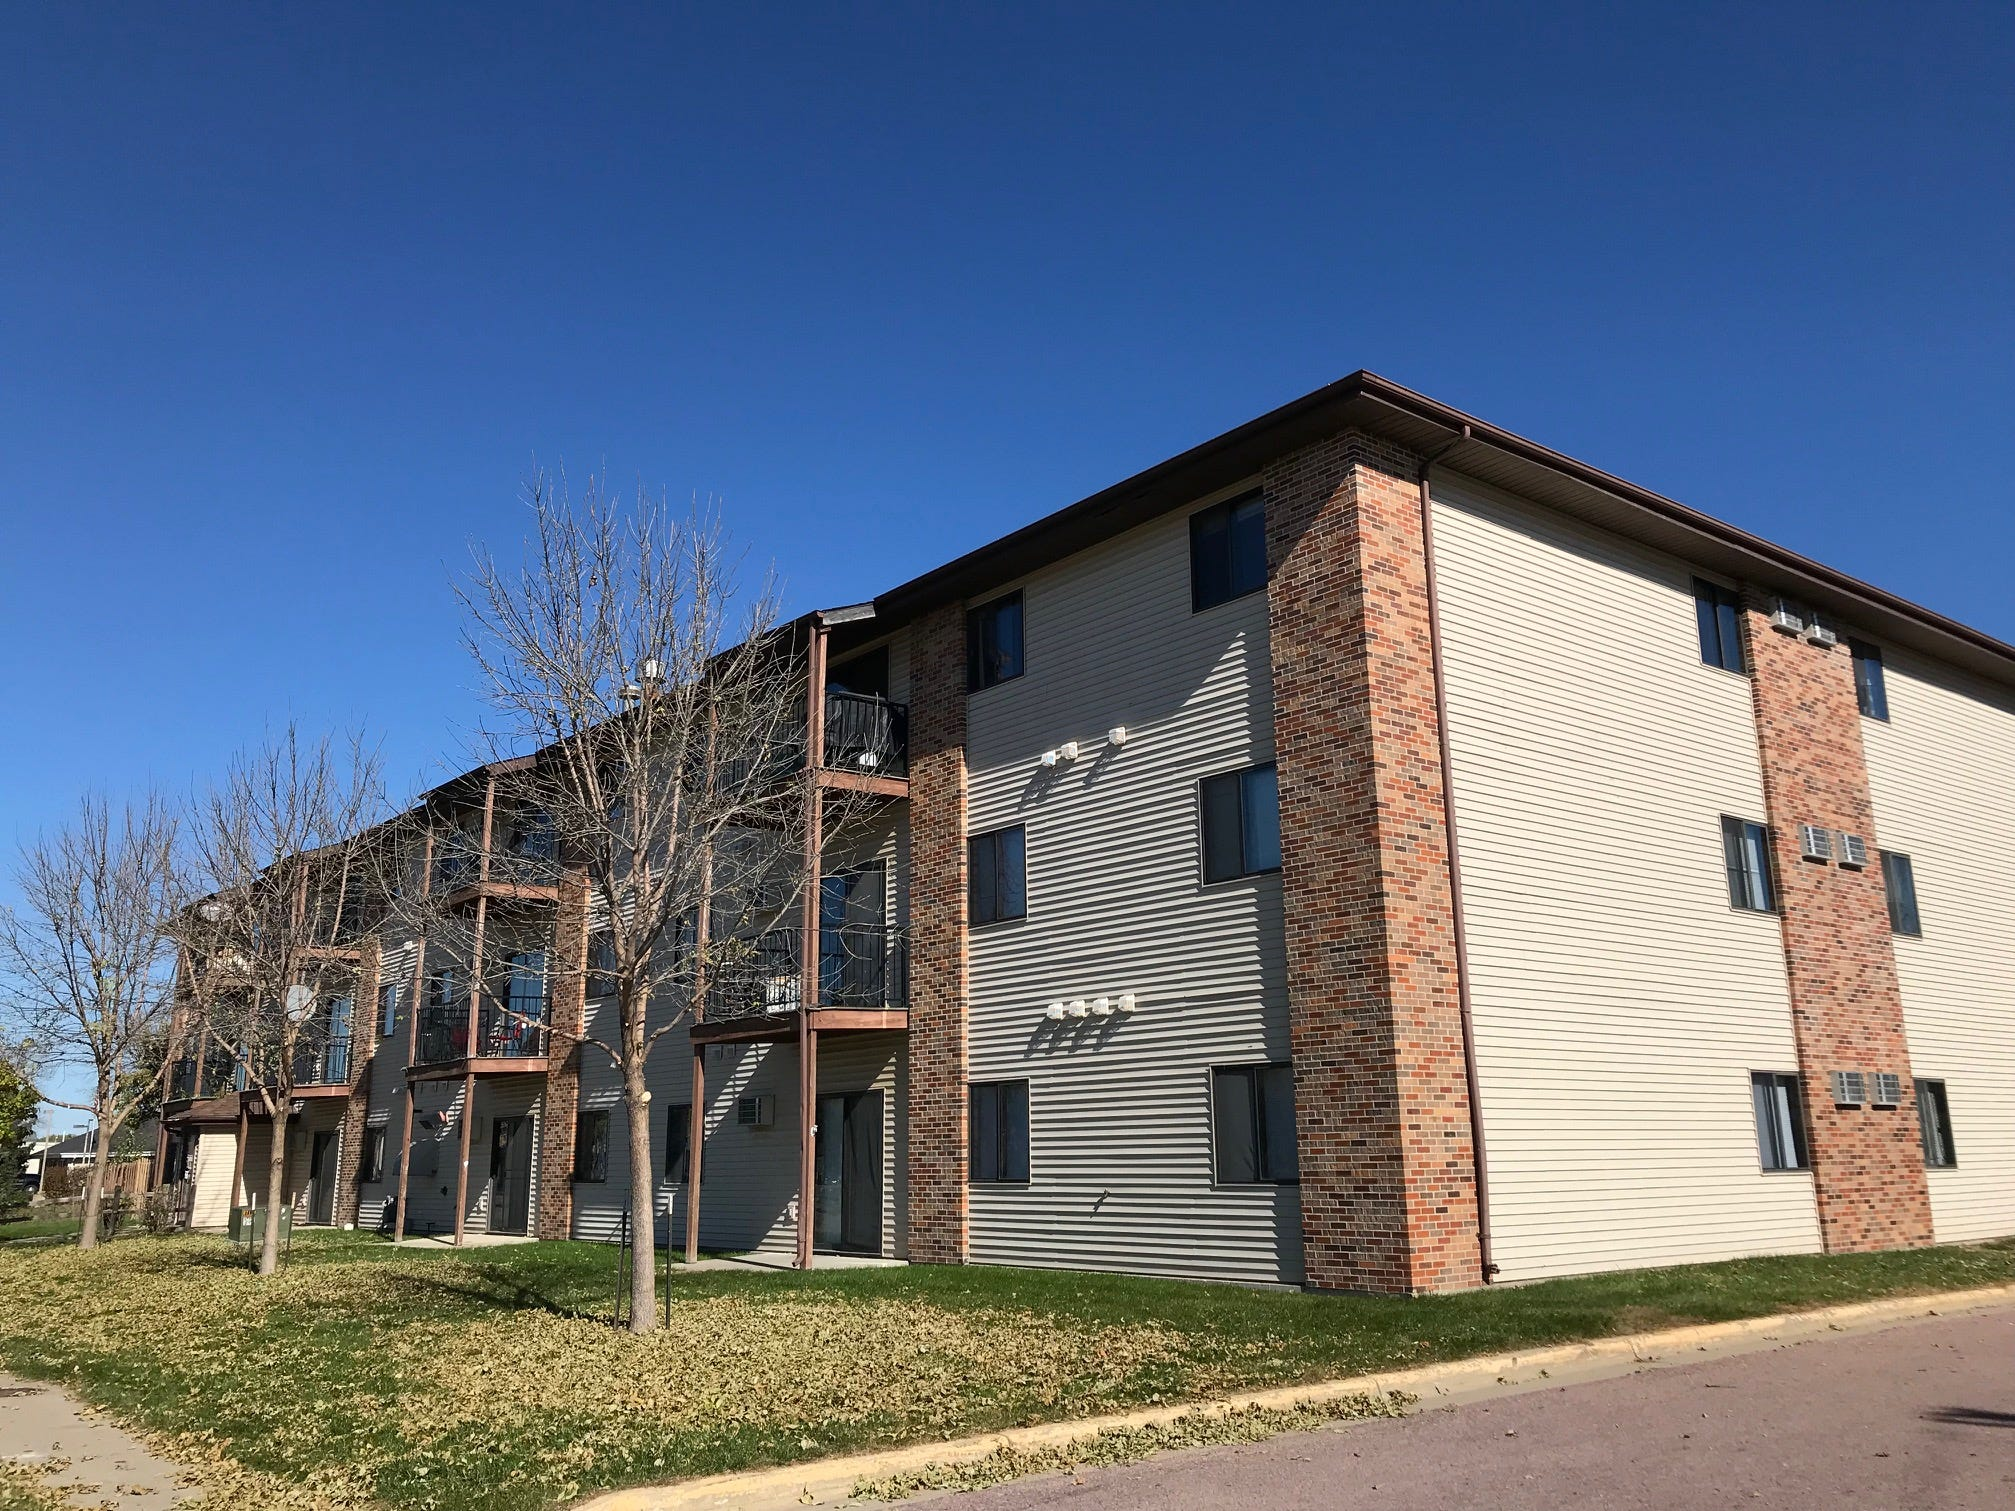 The Sandy Creek apartments, located in the 300 block of North Western Avenue in Sioux Falls, acquired by Miami-based Tzadik Management.